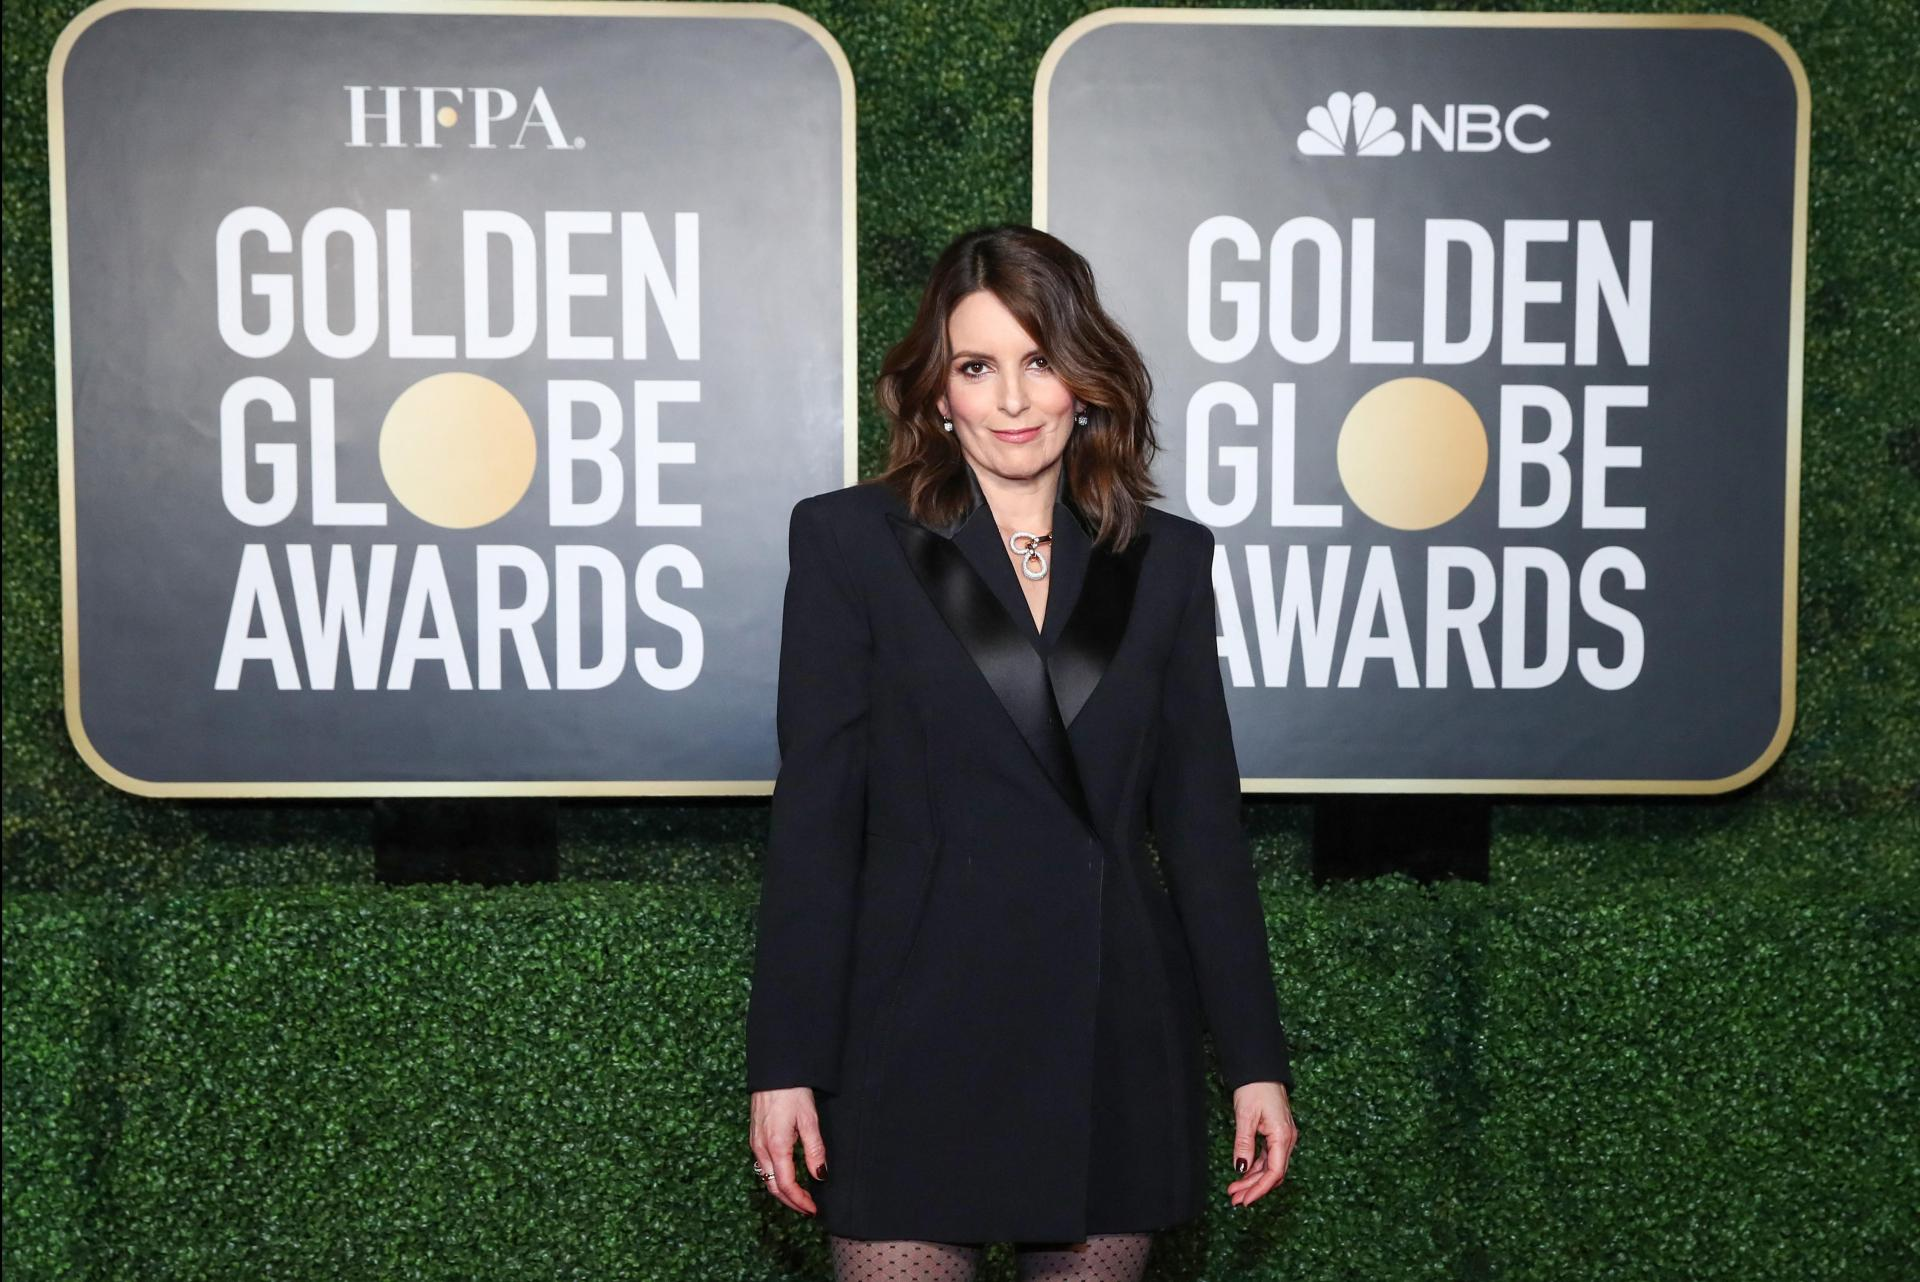 Tina Fey, one of the co-presenters of the show. Photo: Cindy Ord/Nbcuniversal/AFP